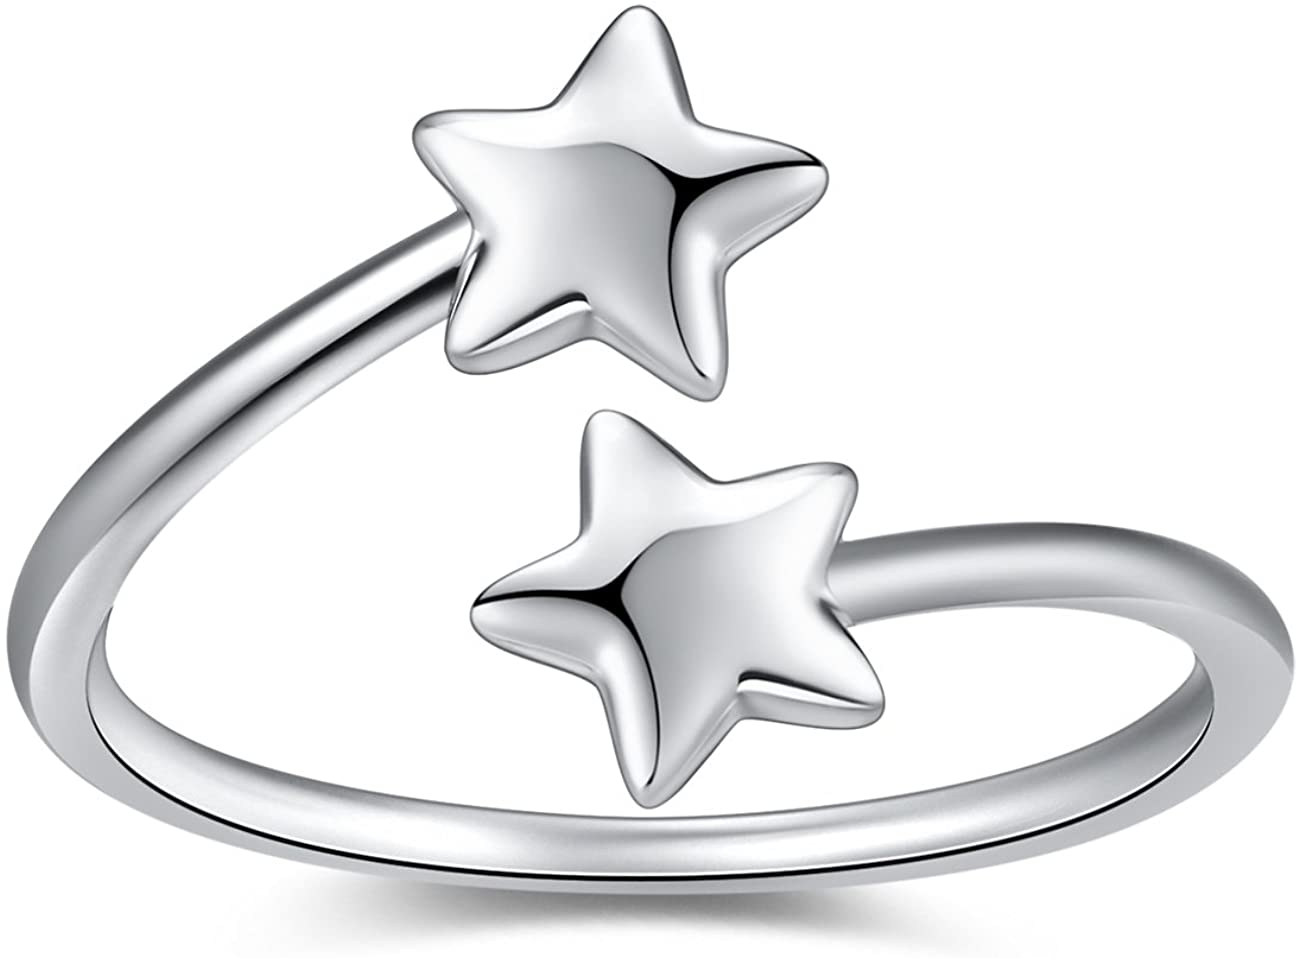 VG Studio Double Cute Five Pointed Star Adjustable Open Rings, Silver Plated